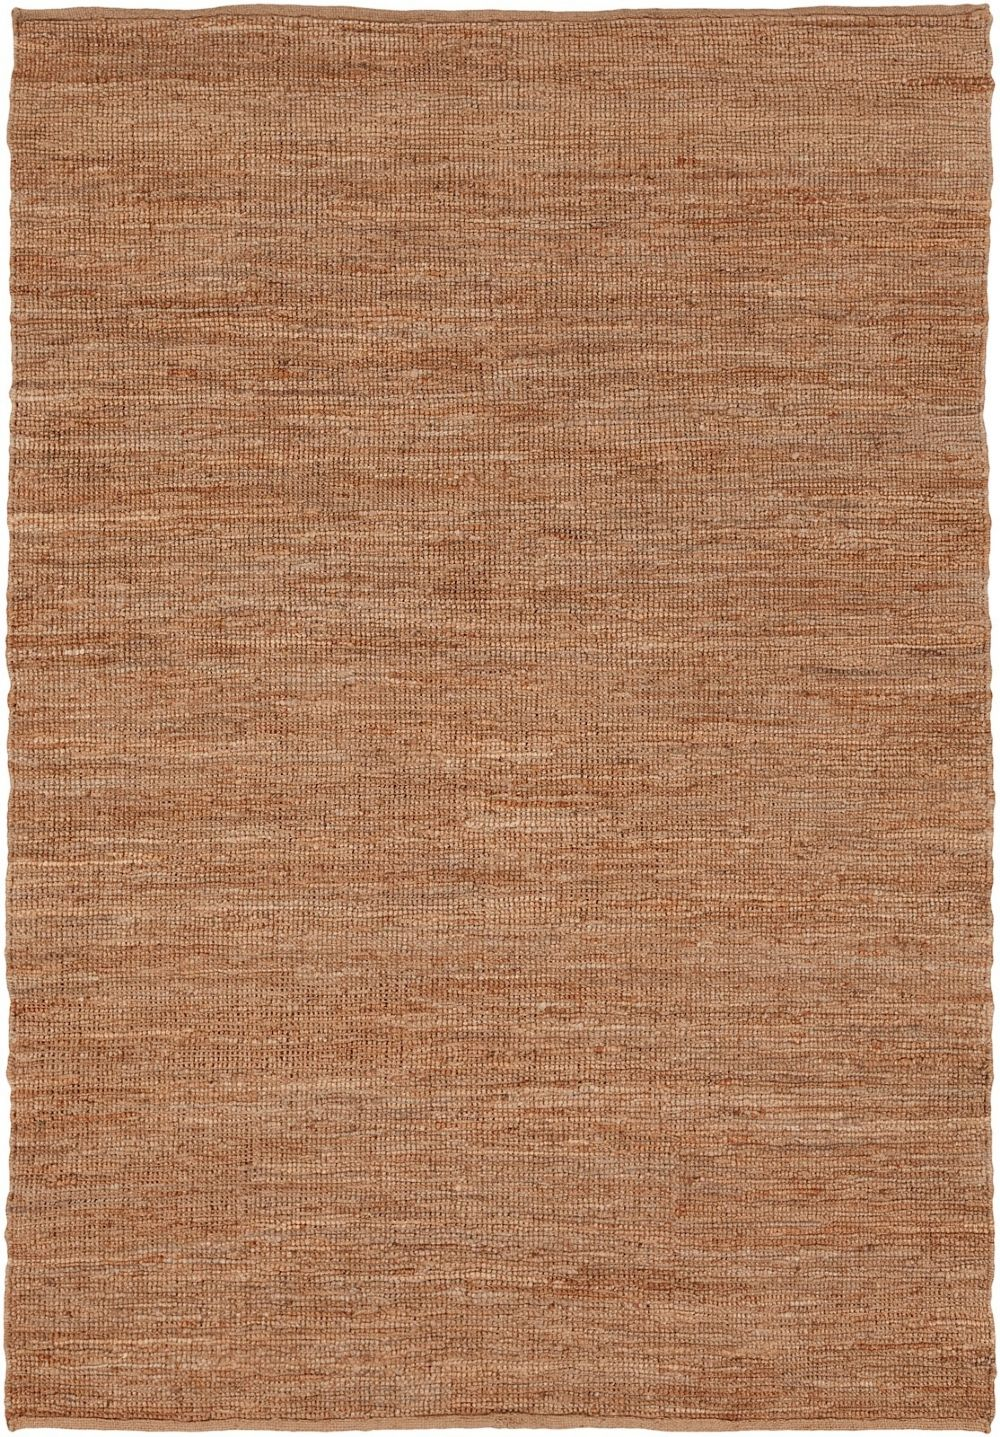 chandra pricol natural fiber area rug collection